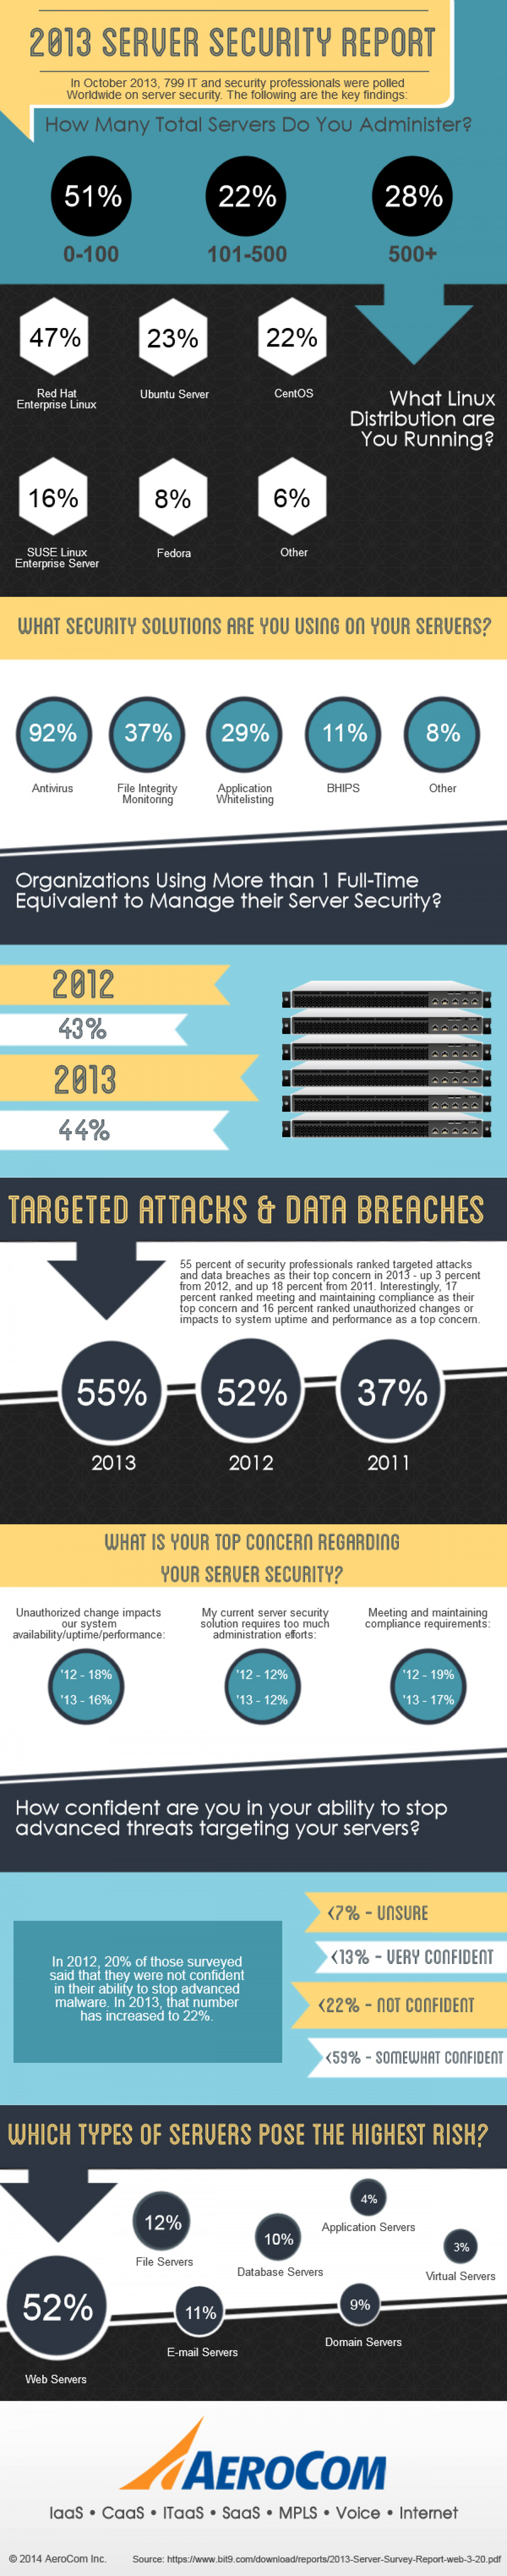 2013 Server Security Report Infographic